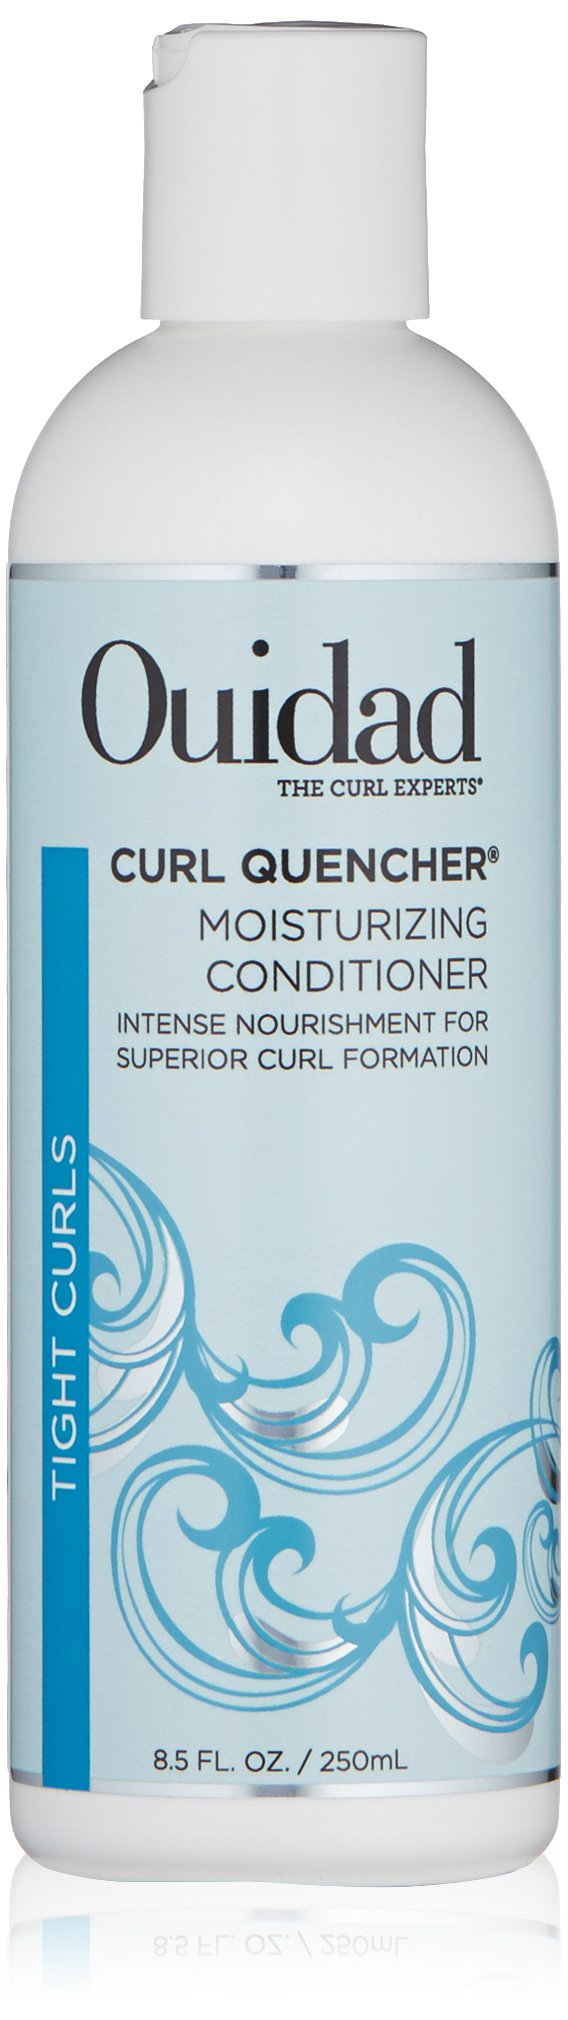 Ouidad Curl Quencher Moisturizing Conditioner, 8.5 Fl Oz by Ouidad (Image #1)